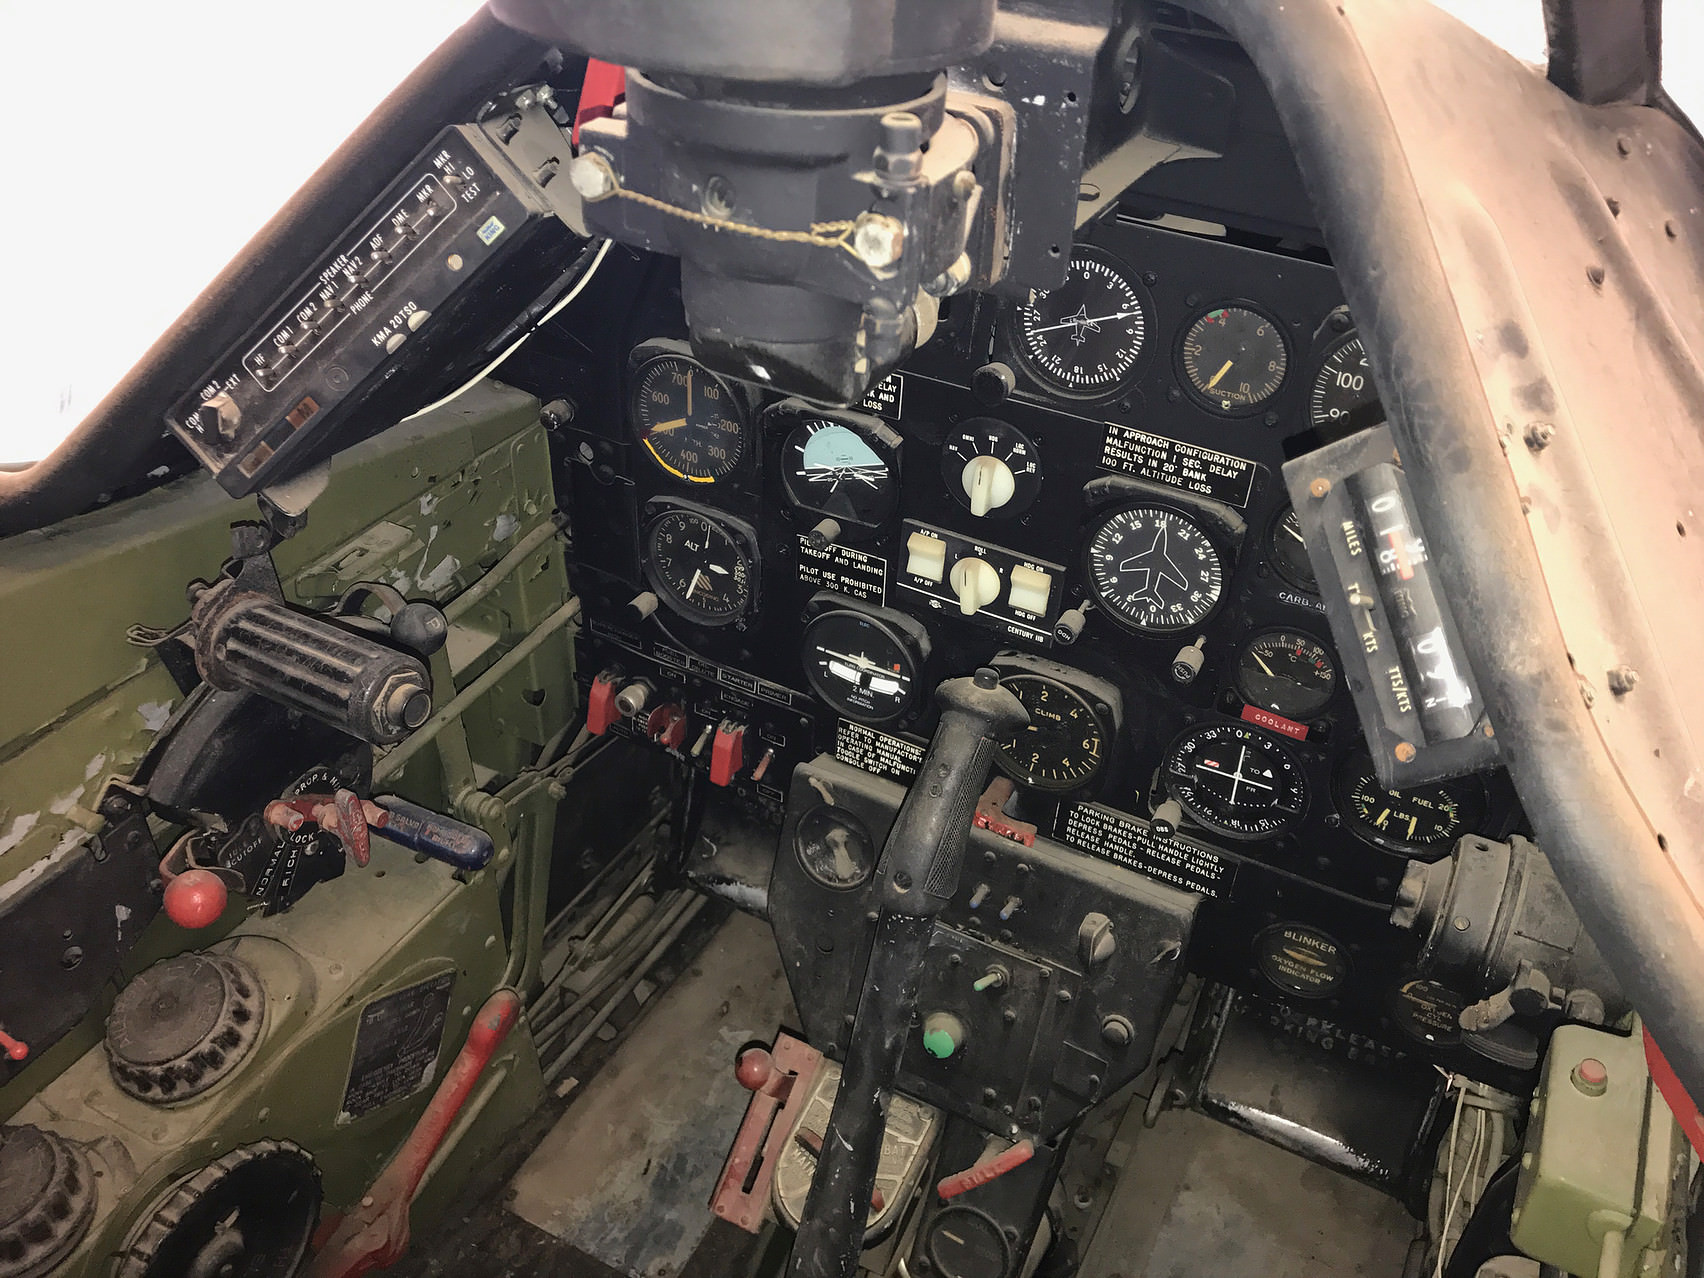 mustang 51 51d p51 unrestored fighter barn controls aircraft million find warhistoryonline platinum military configuration last courtesy sales air warbirds